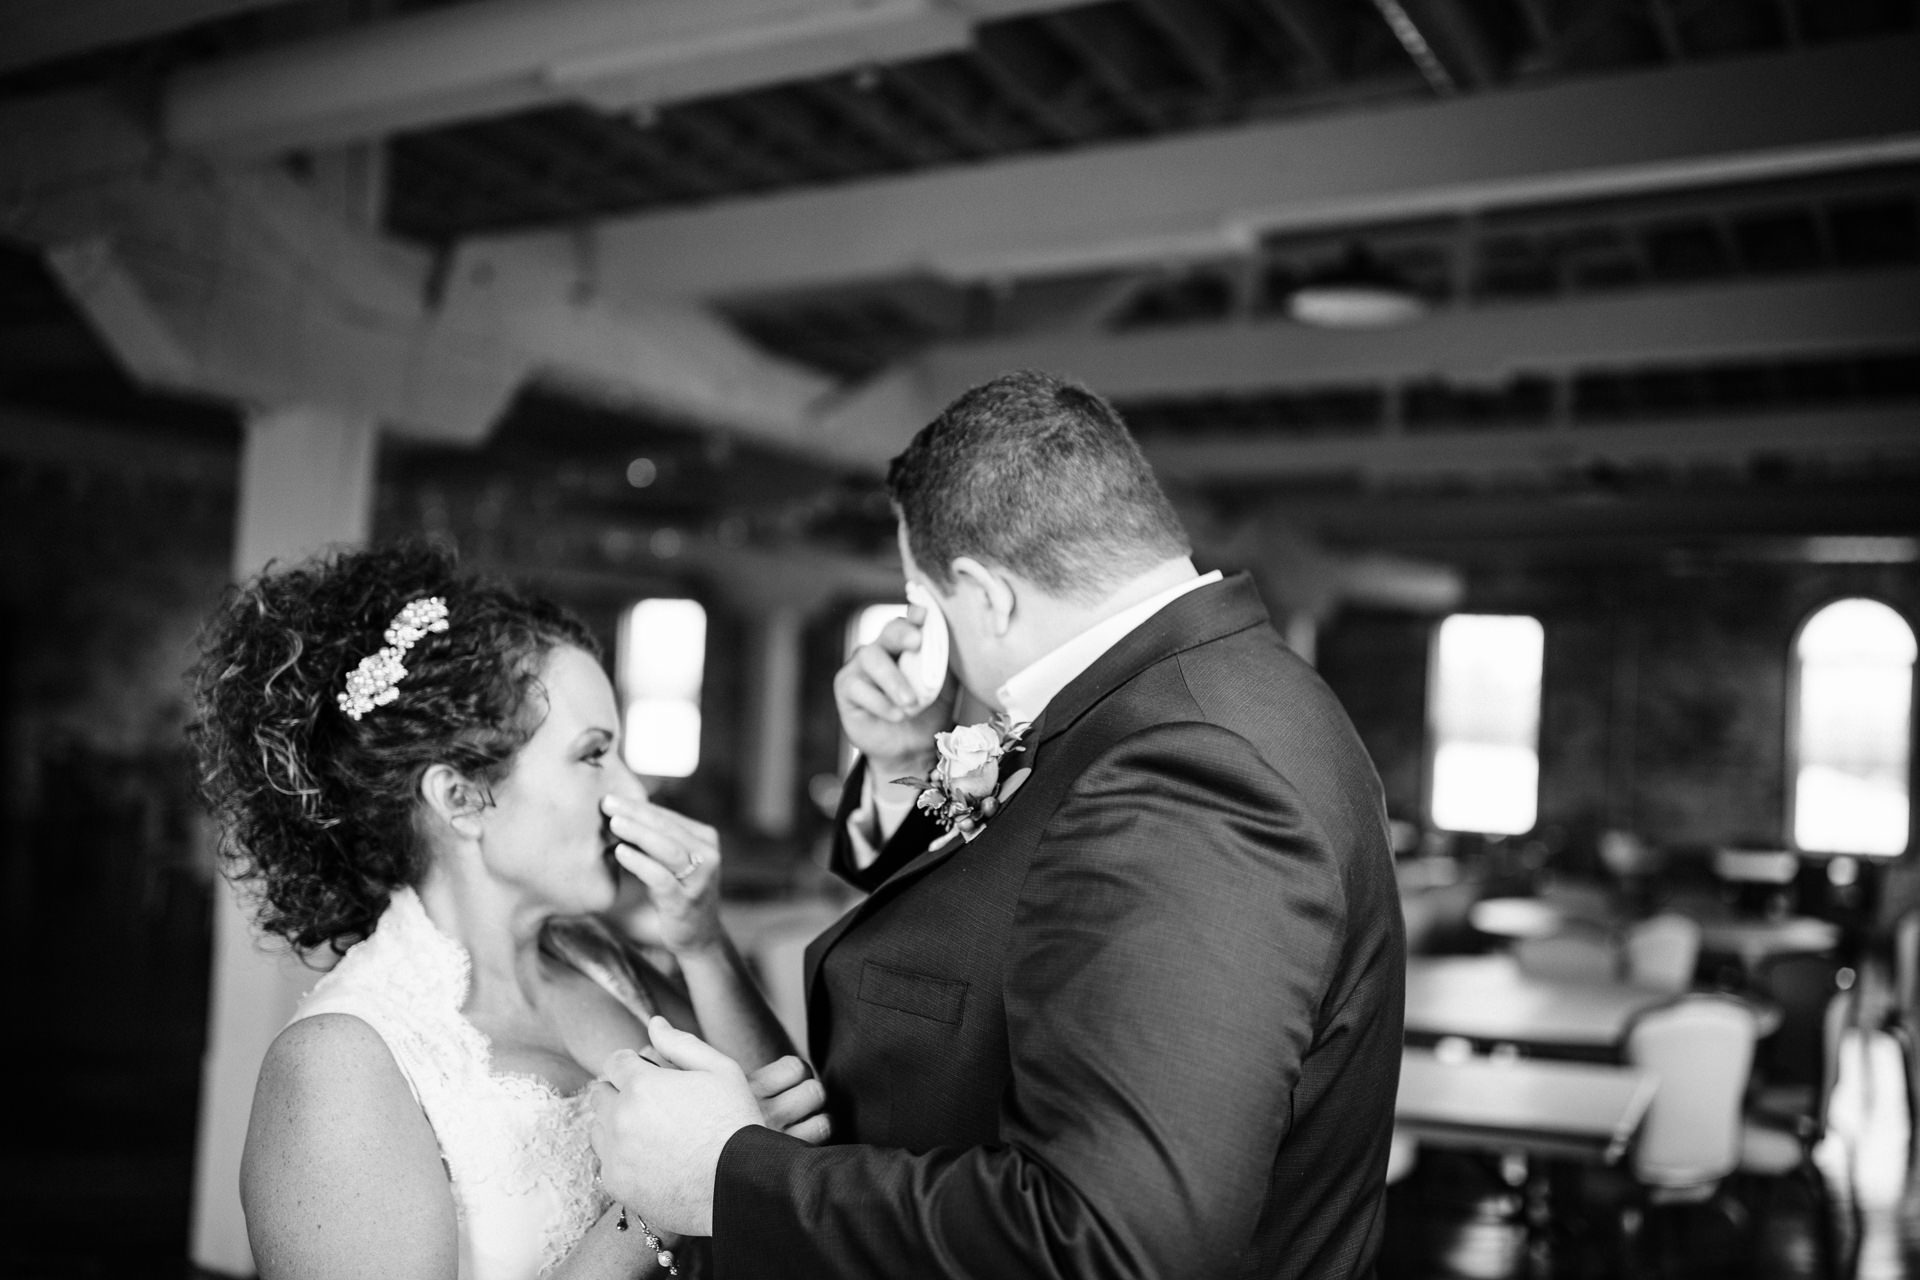 Grant Beachy wedding photographer goshen indiana elkhart south bend-021.jpg